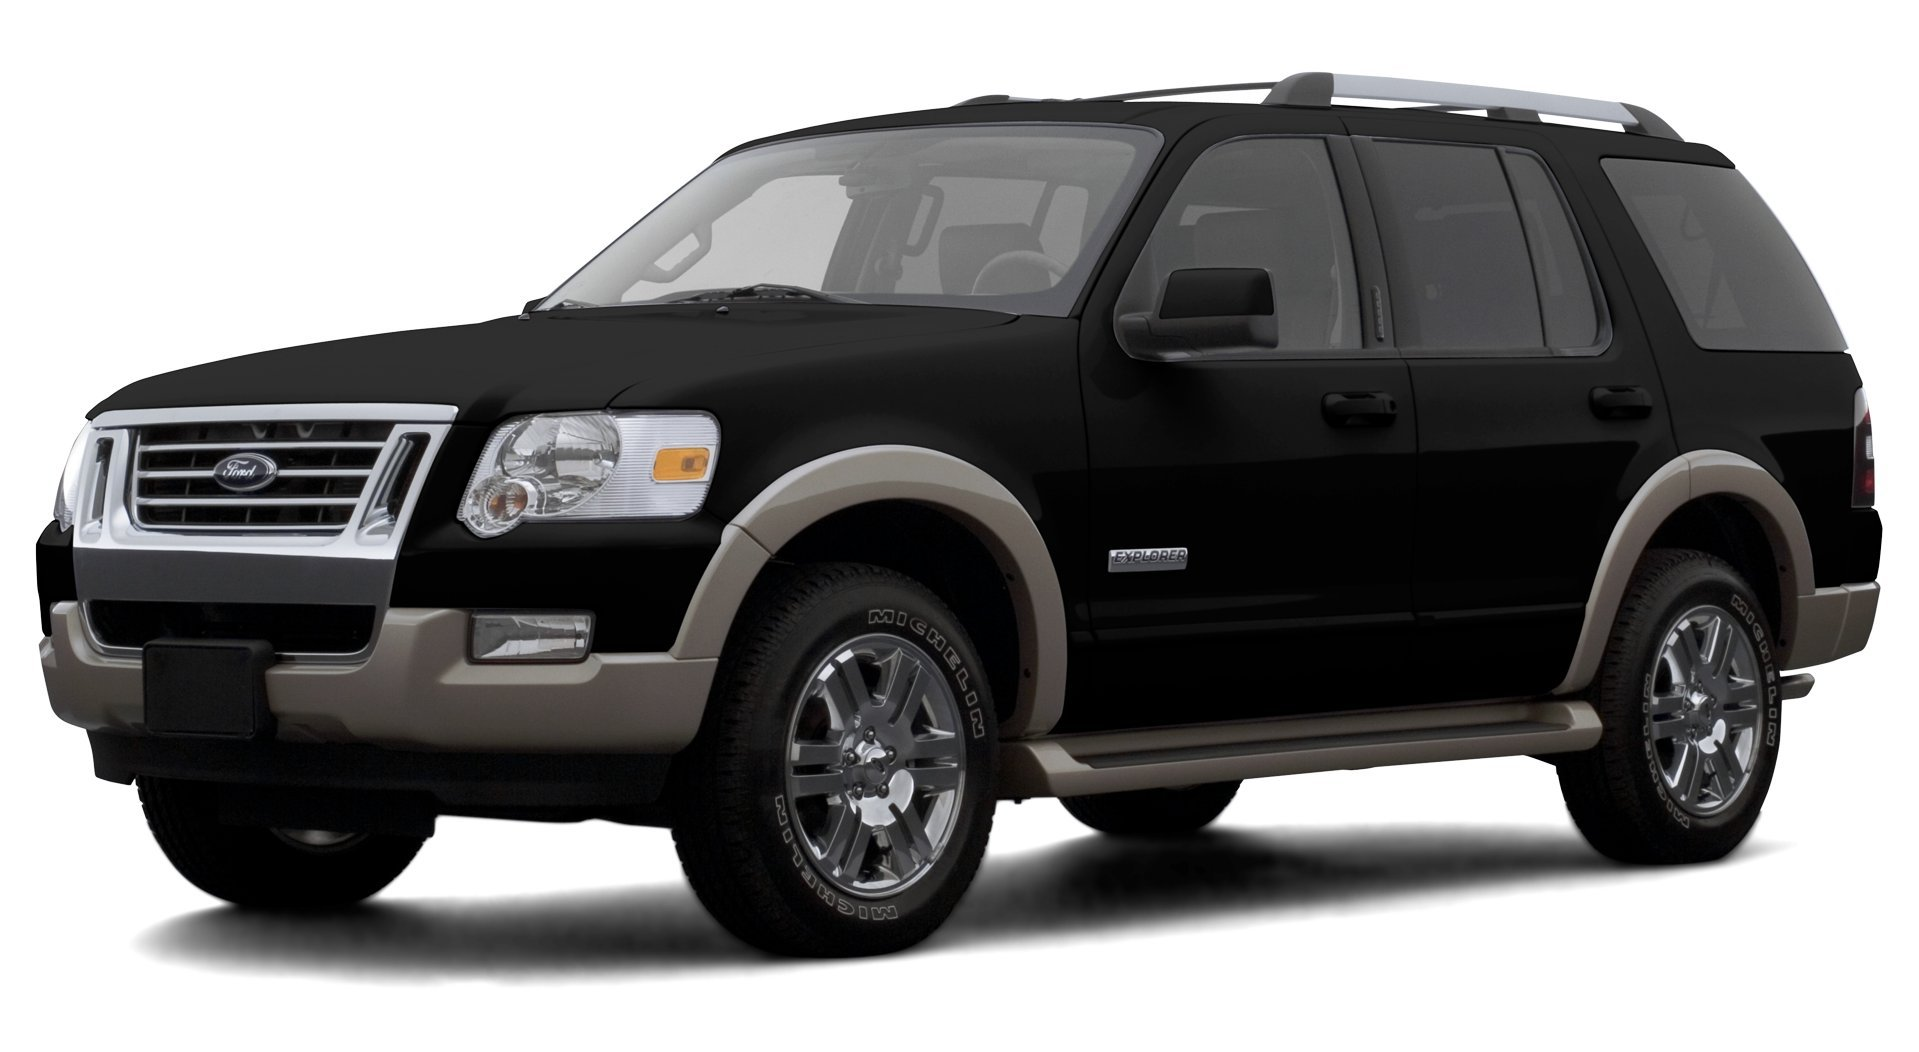 2007 ford explorer eddie bauer 2 wheel drive 4 door v6